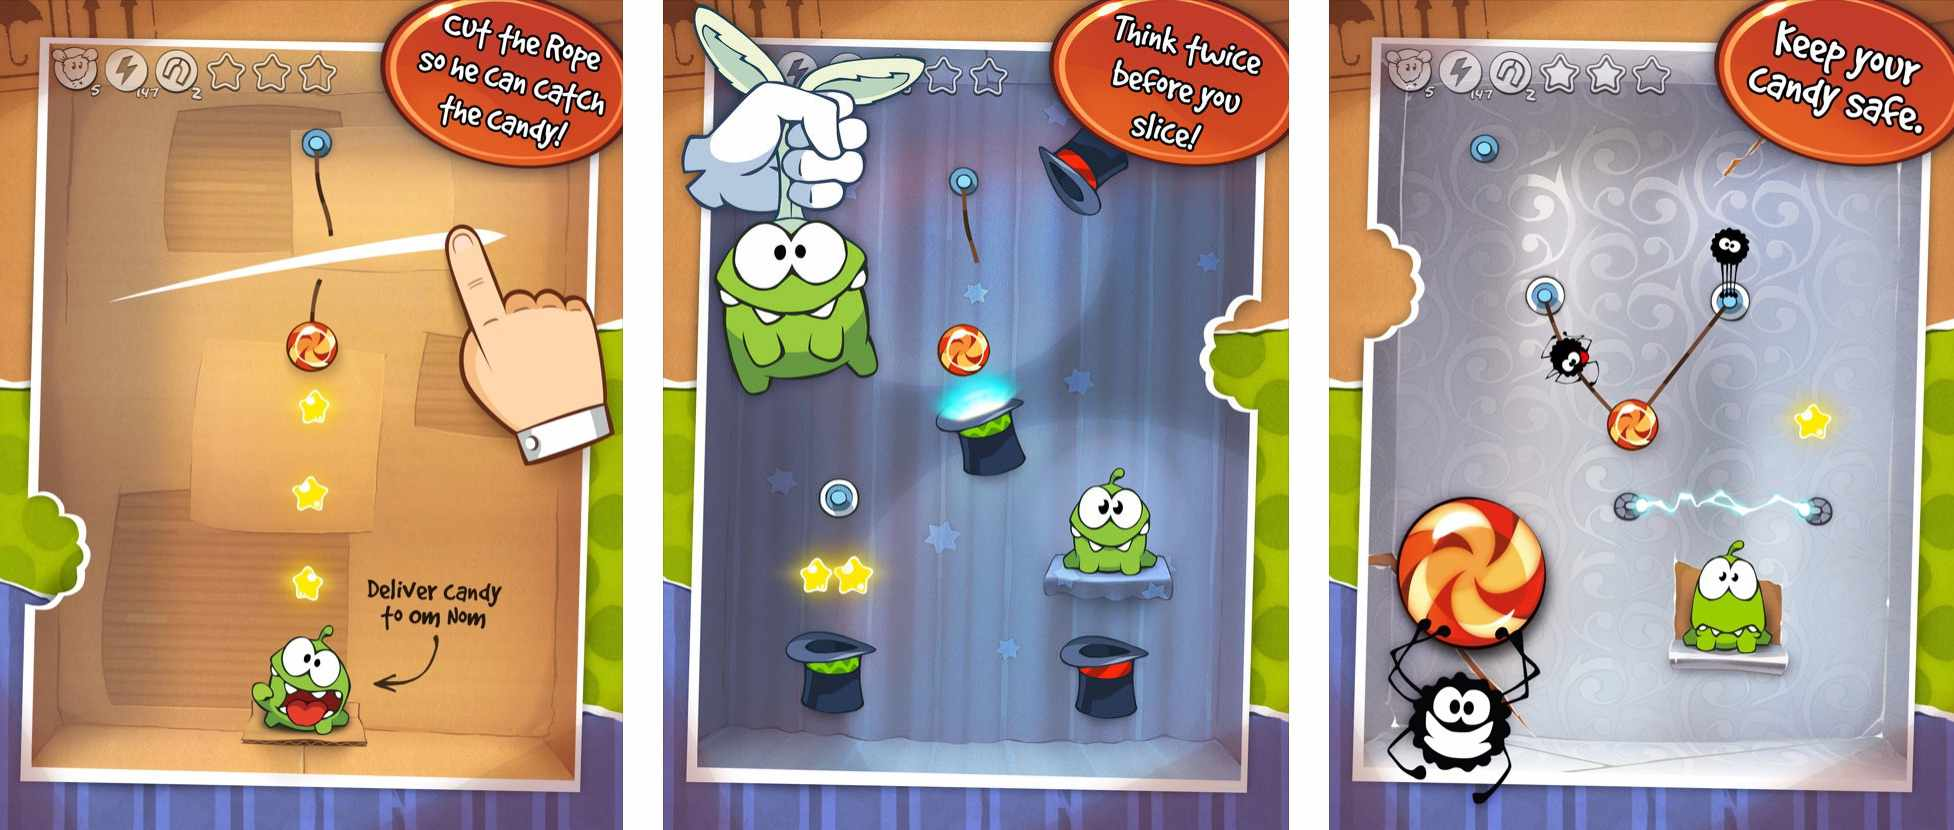 Levels in Cut the Rope GOLD